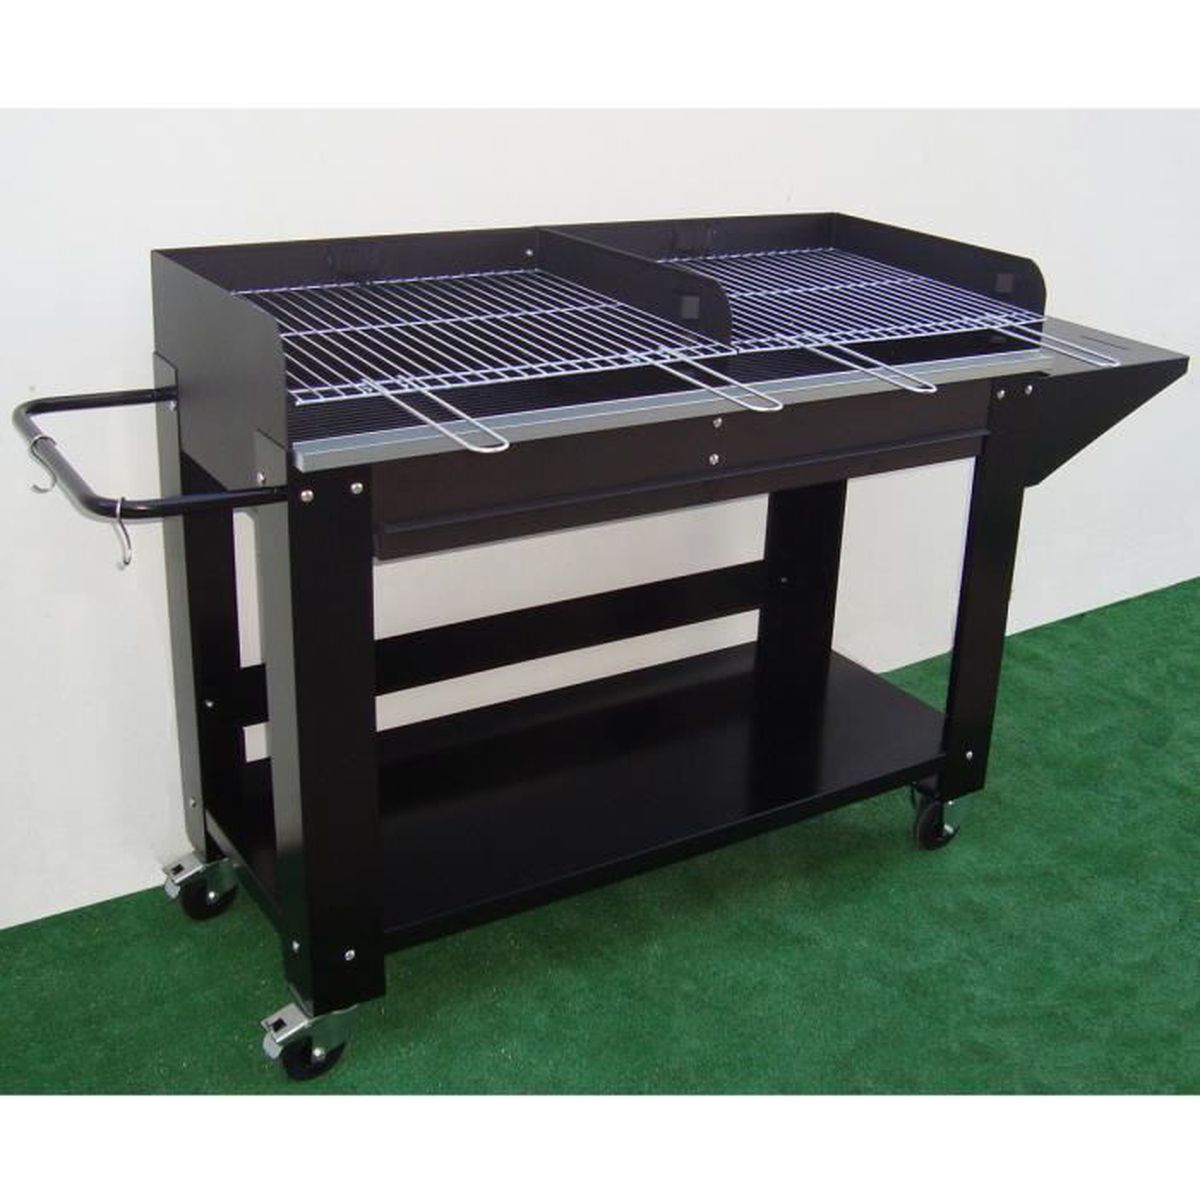 barbecue charbon tres large mangali xxl. Black Bedroom Furniture Sets. Home Design Ideas